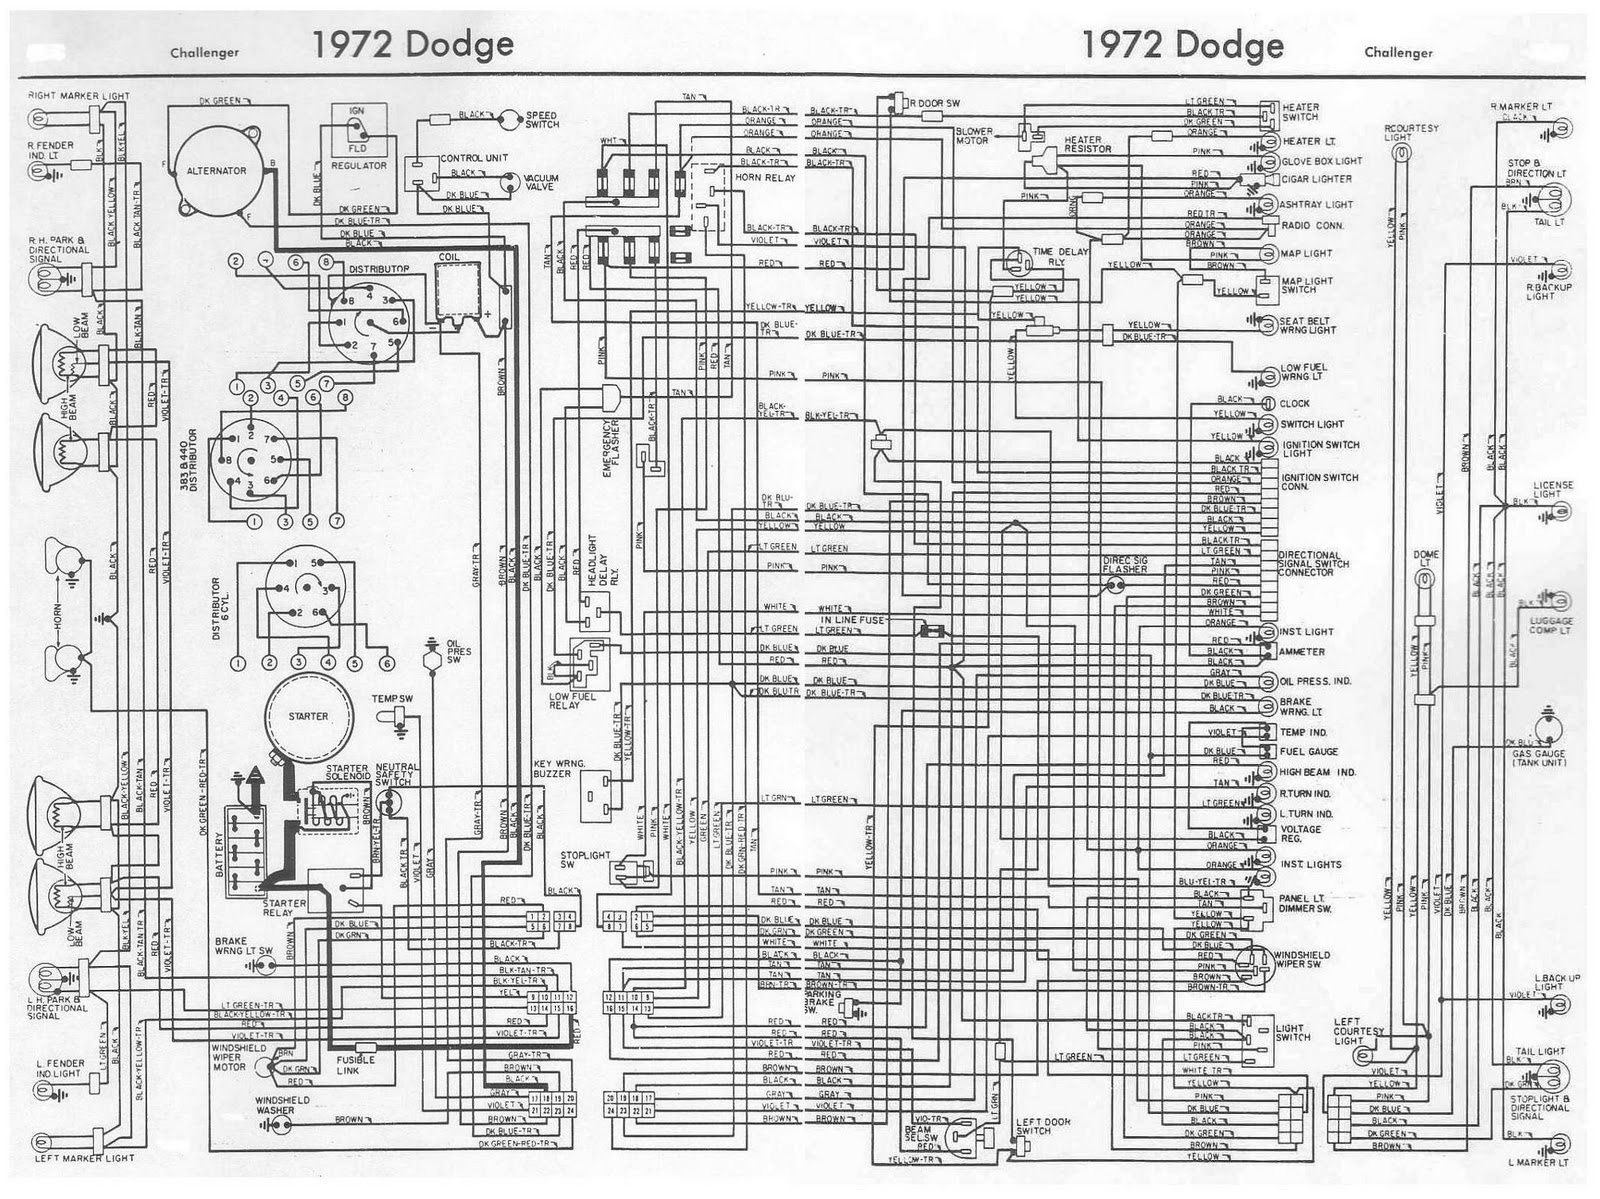 Dodge Challenger 1972 Complete Wiring Diagram | All about